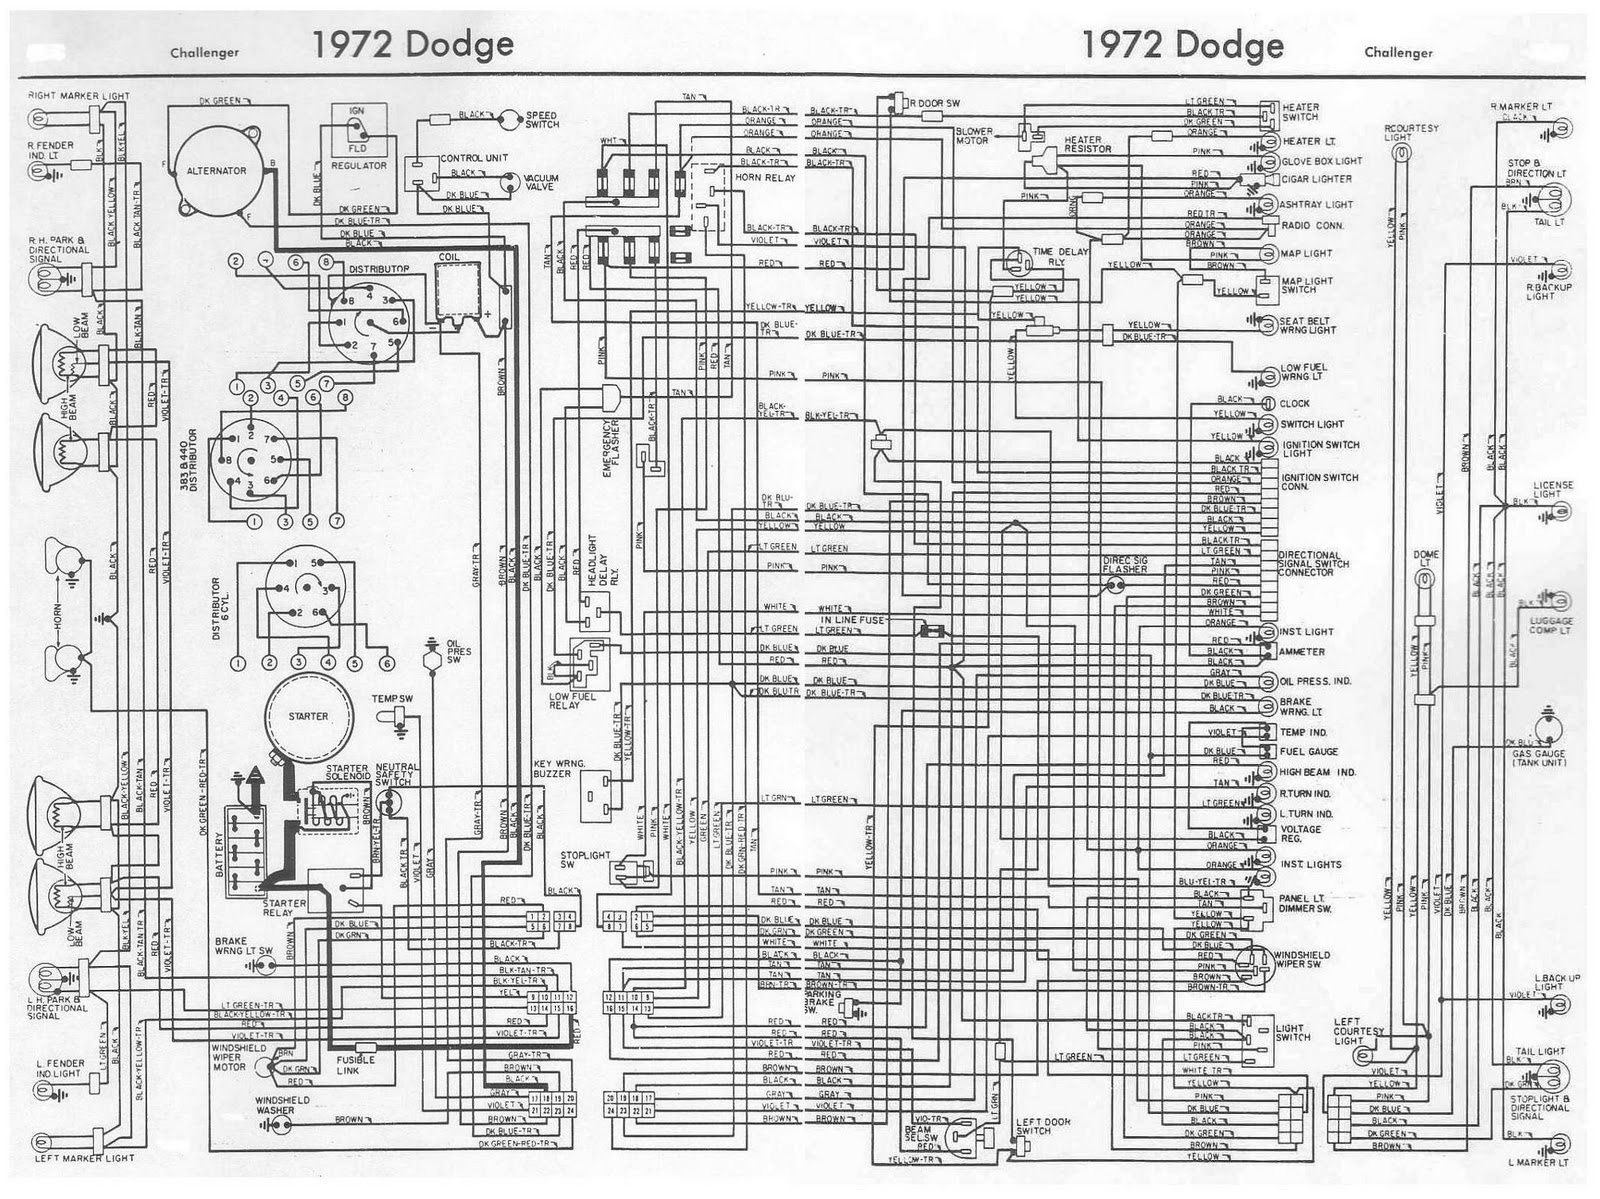 Dodge Challenger 1972 Complete Wiring Diagram | All about